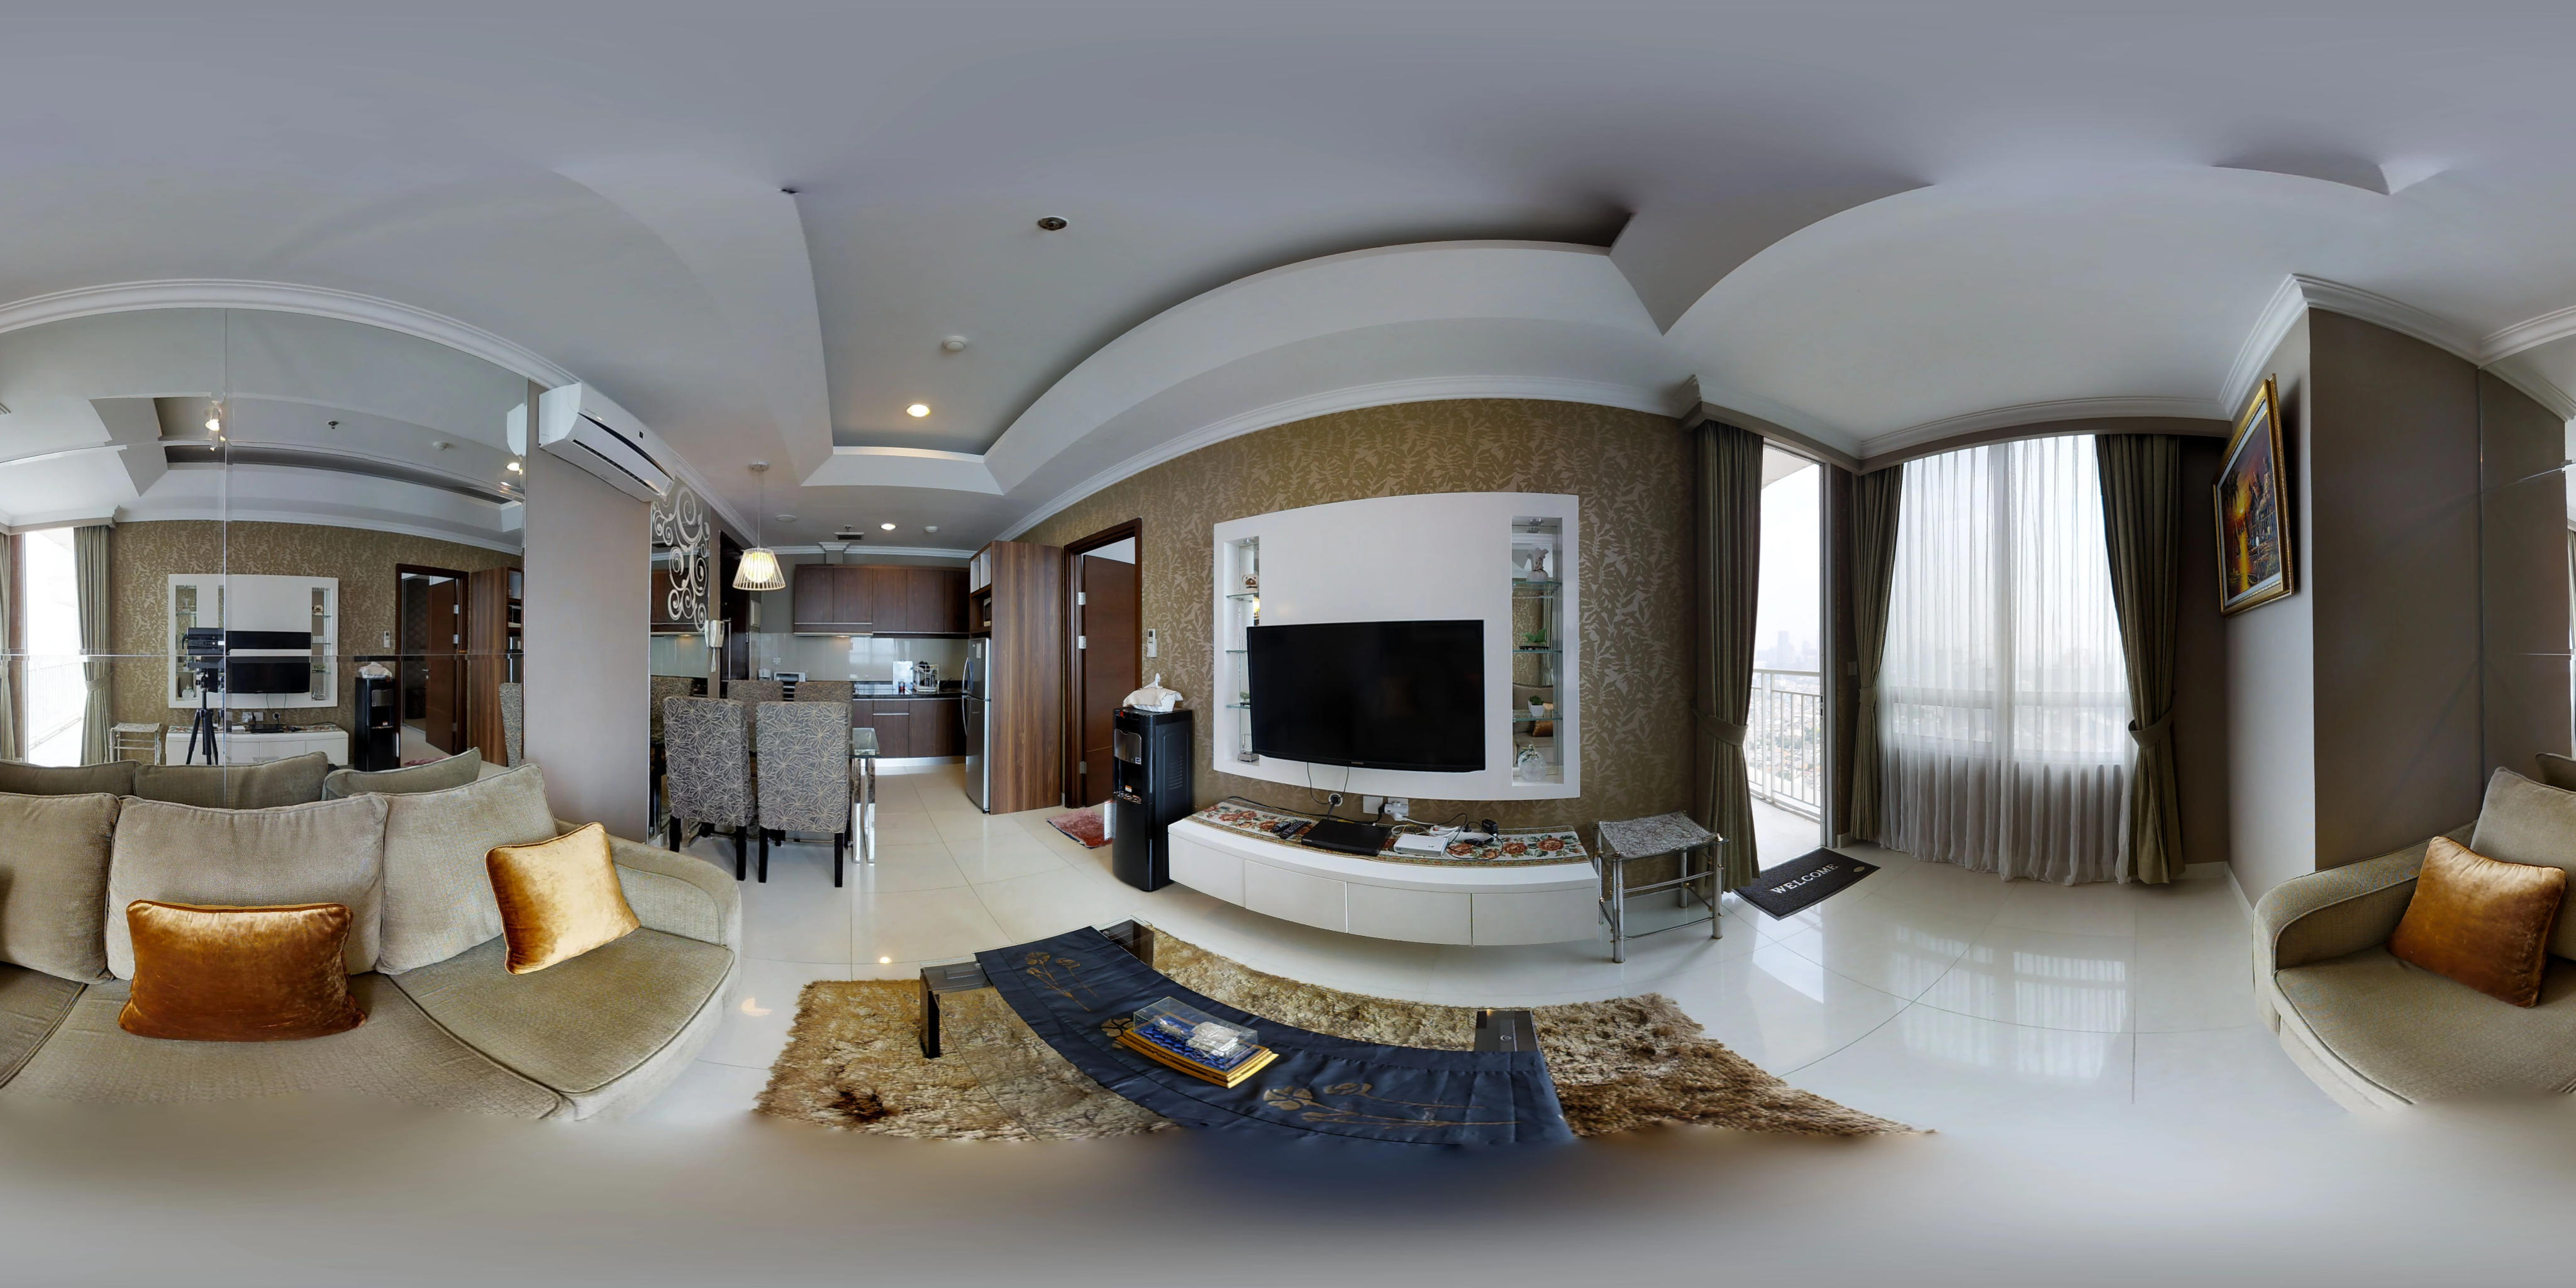 for rent Denpasar Residence - Spacious & Luxurious 1 Bedroom Unit With City View